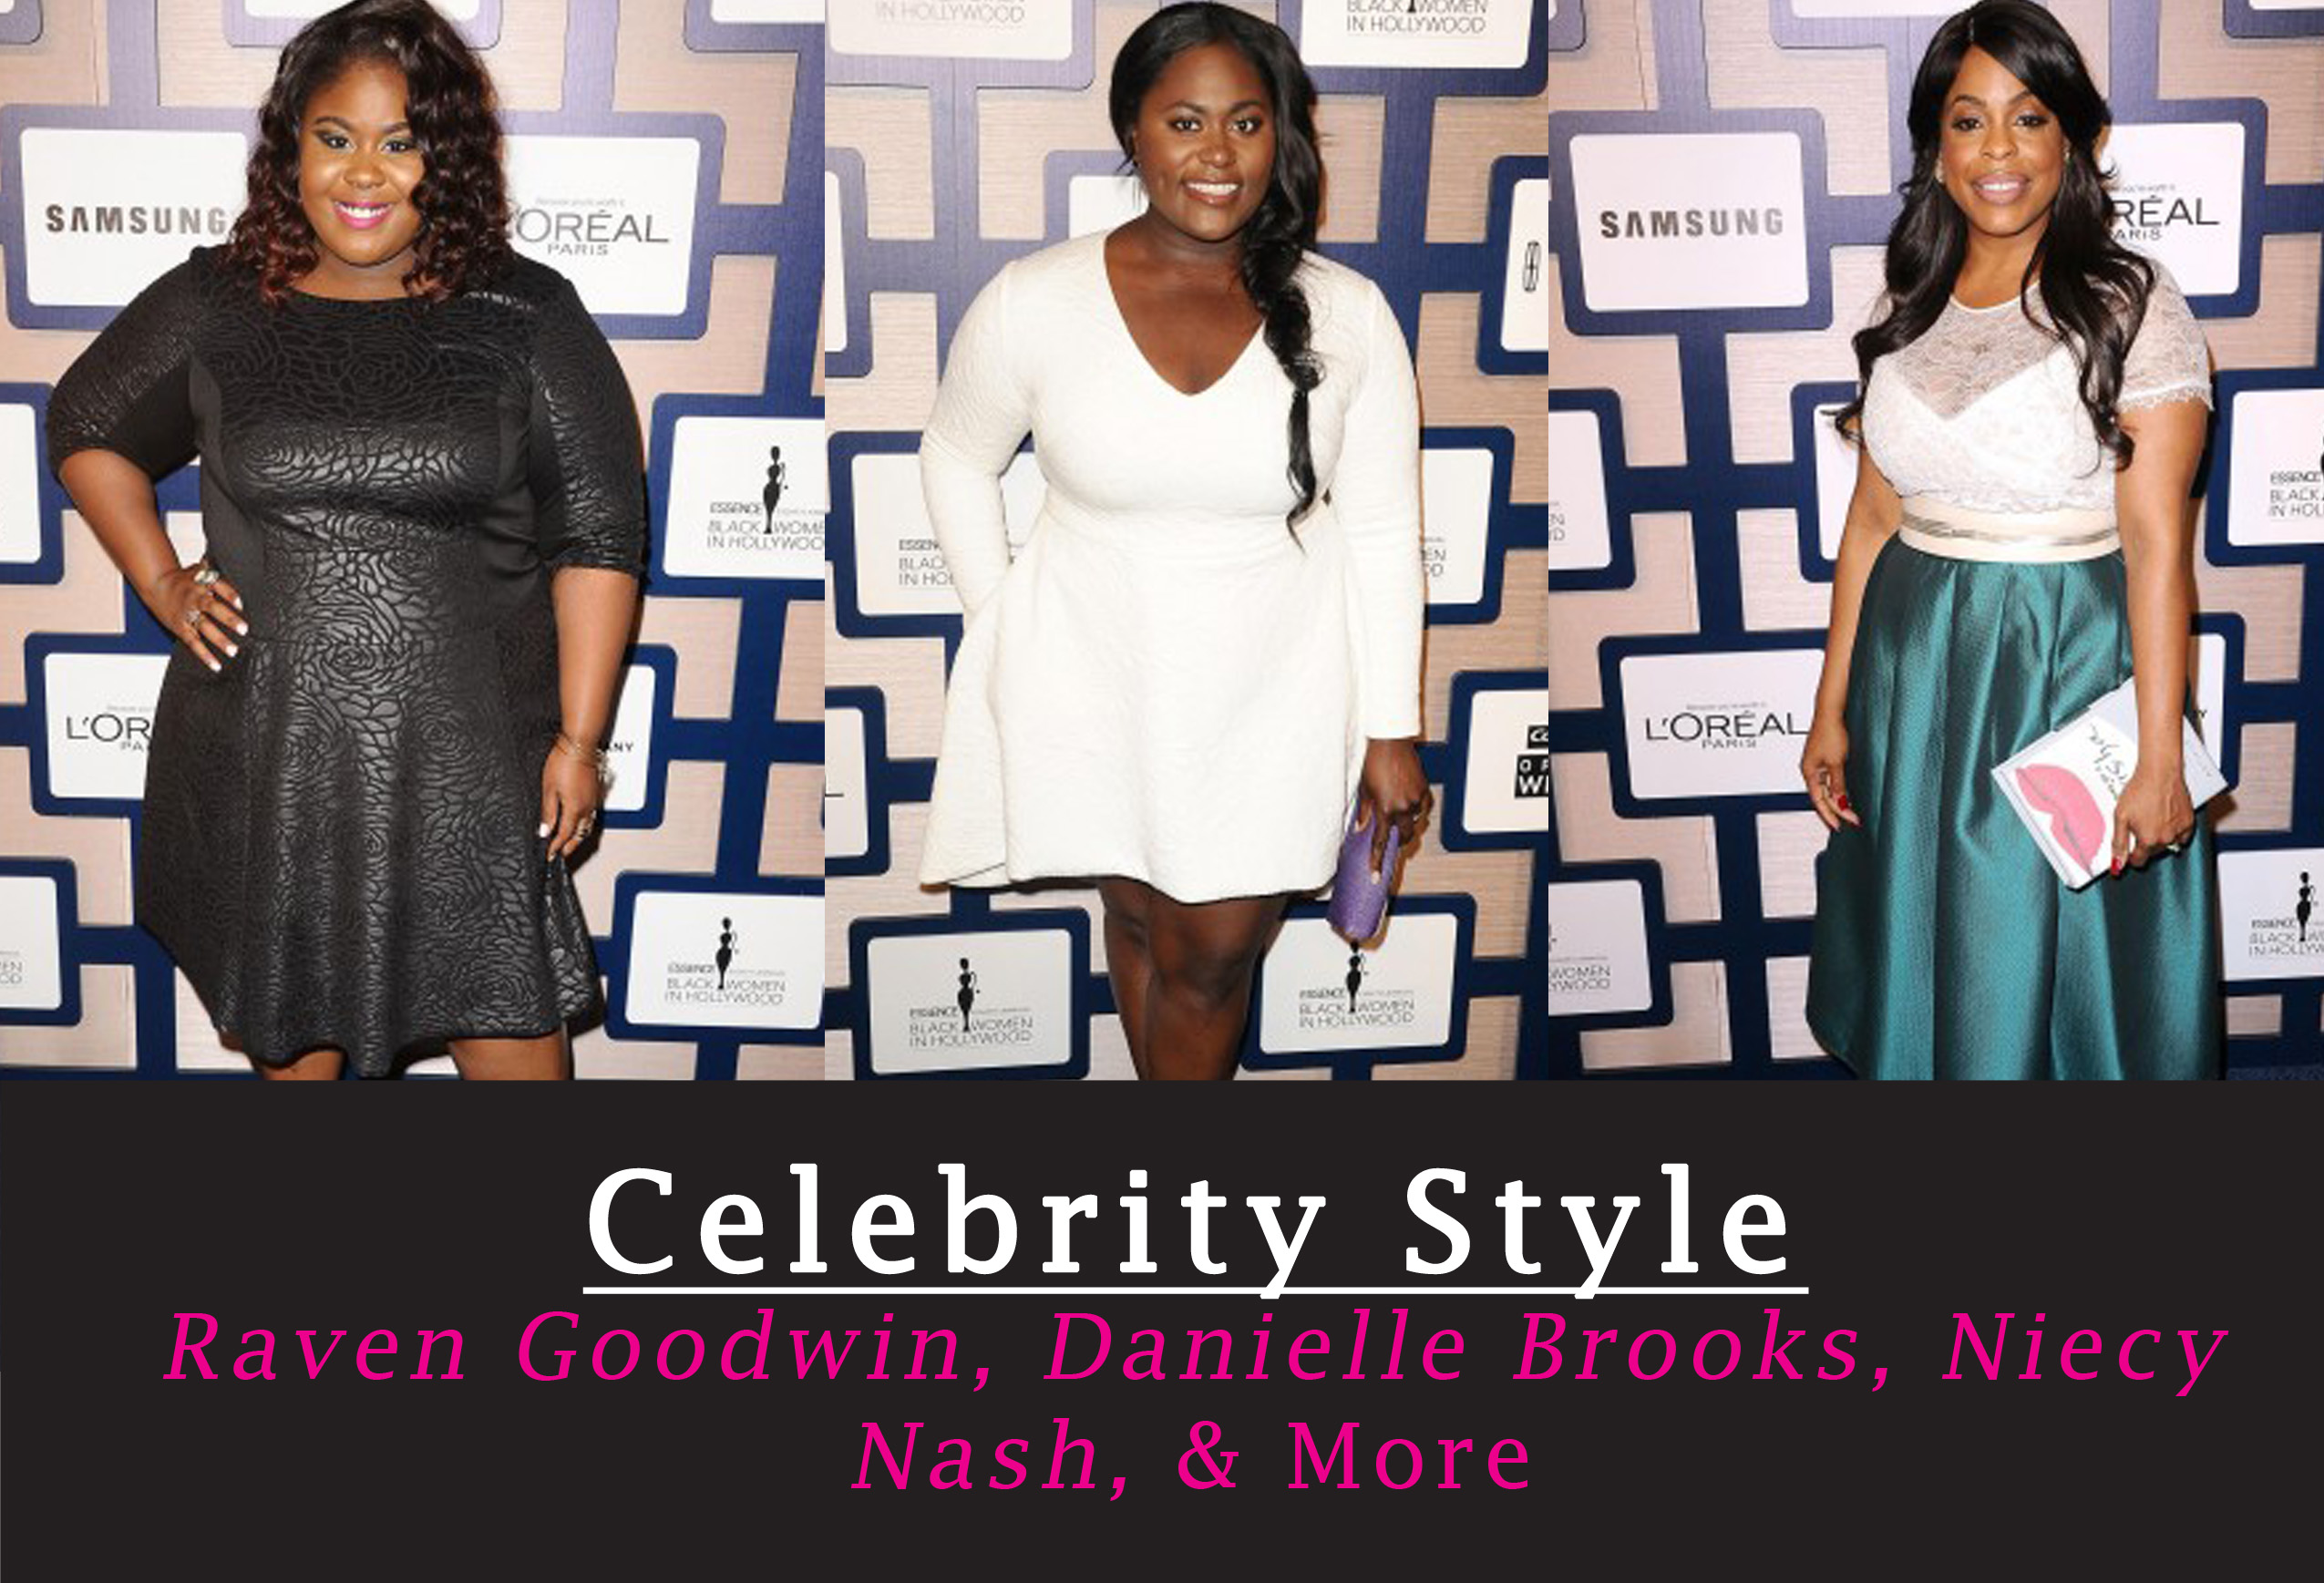 Shonda Rhimes, Raven Goodwin, Danielle Brooks, and Niecy Nash at Essence Black Women In Hollywood Event